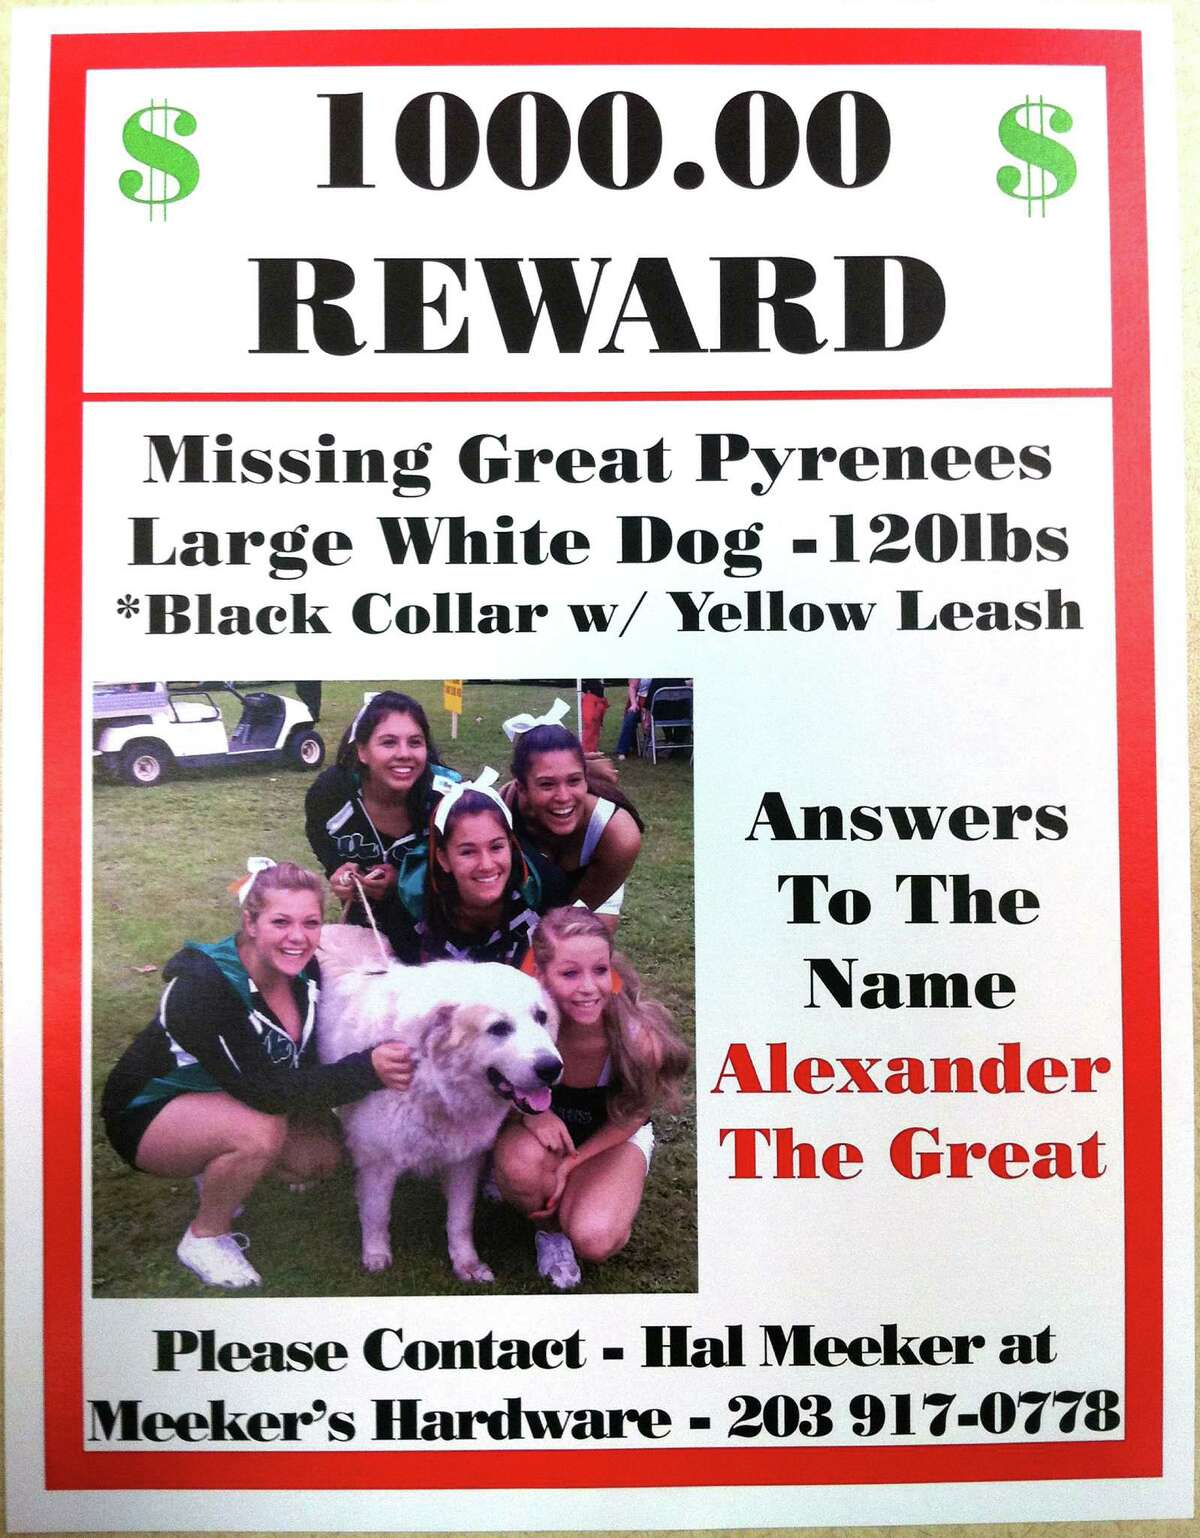 The owner of Alex, the 120 lb. Great Pyrenees dog who went missing from behind Meeker's Hardware Store on Sept. 29, is now offering a $1,000 reward.